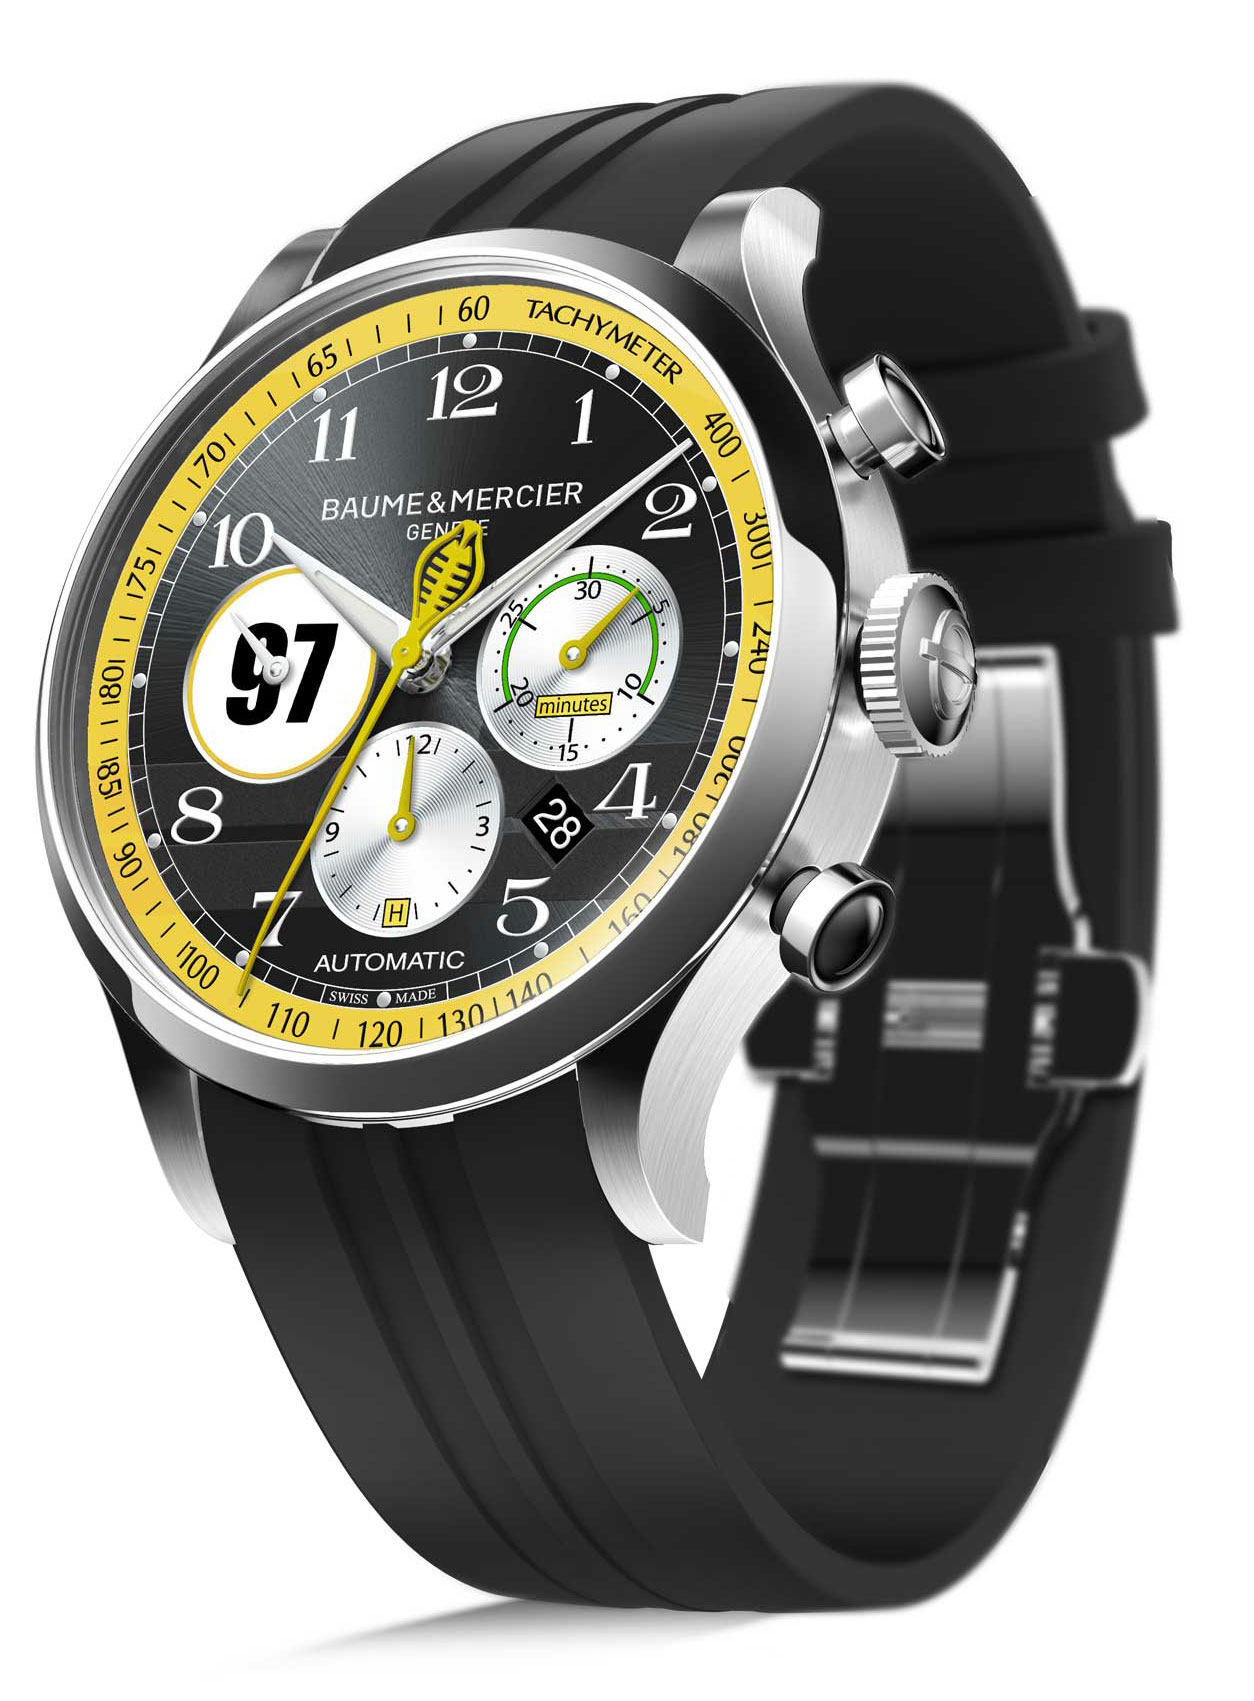 080217-top-10-motorsports-watches-baume-et-mercier-capeland-shelby-cobra-1